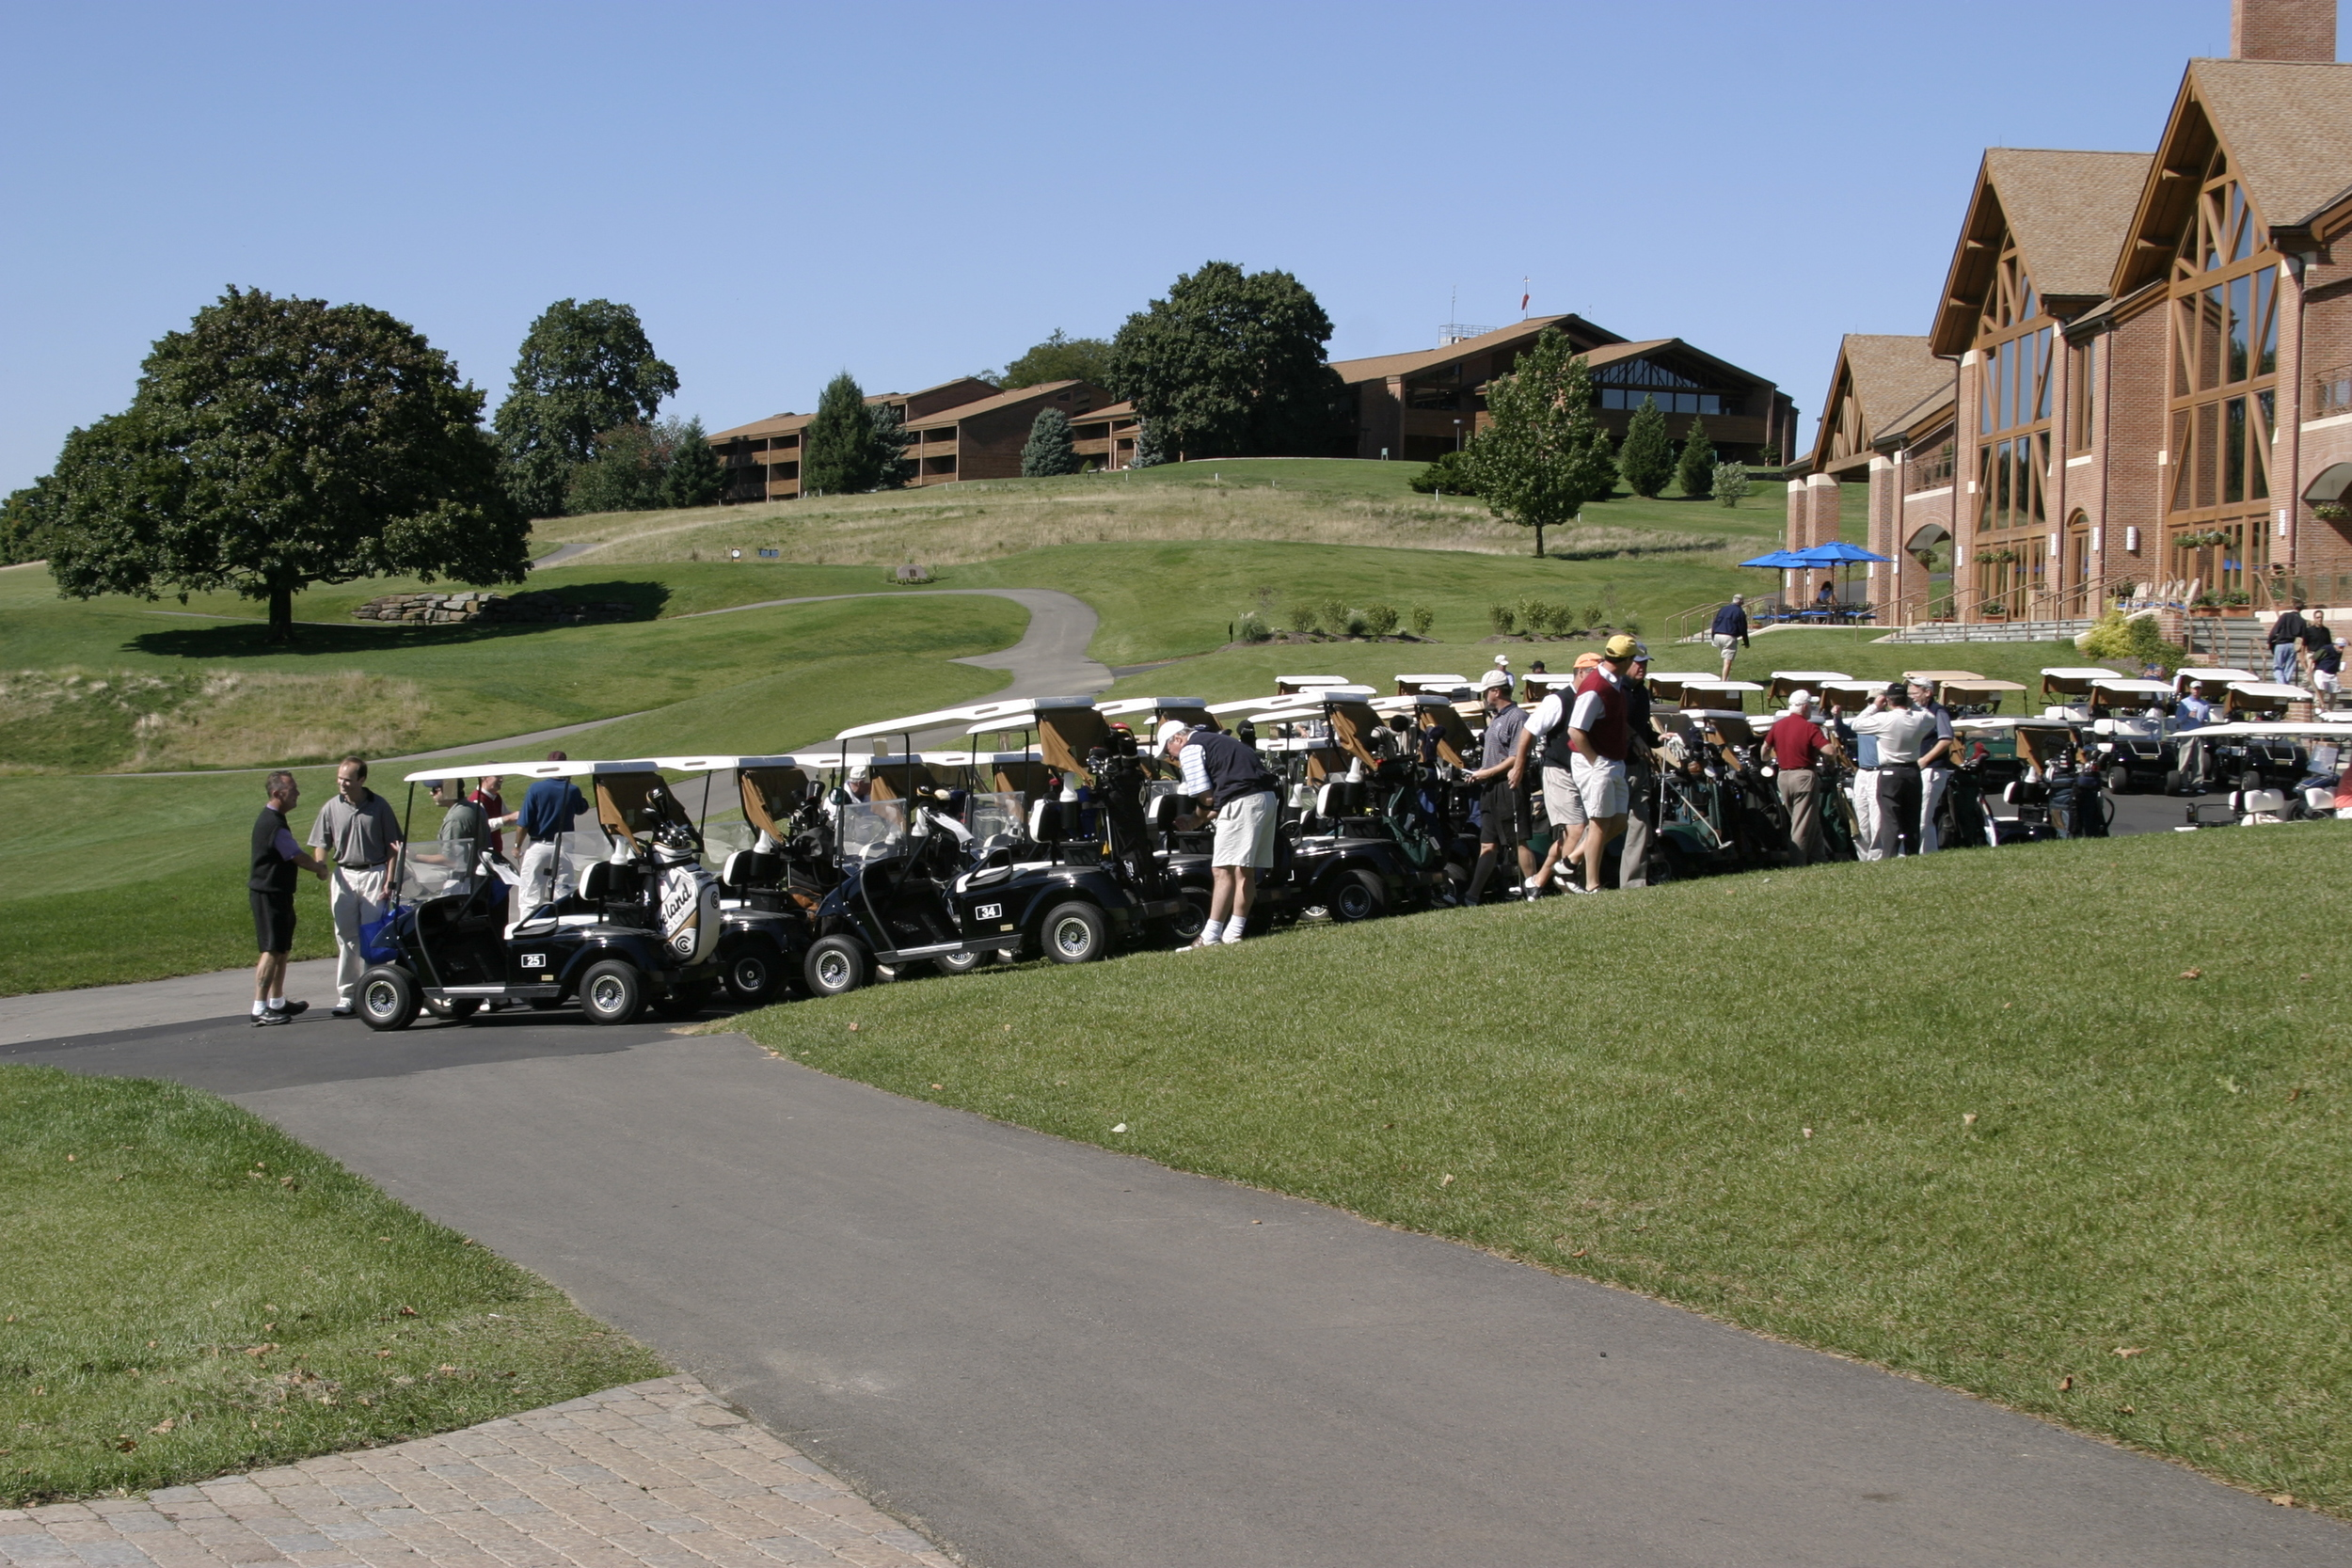 American Ireland Fund, Annual Golf Fundraiser in Philadelphia